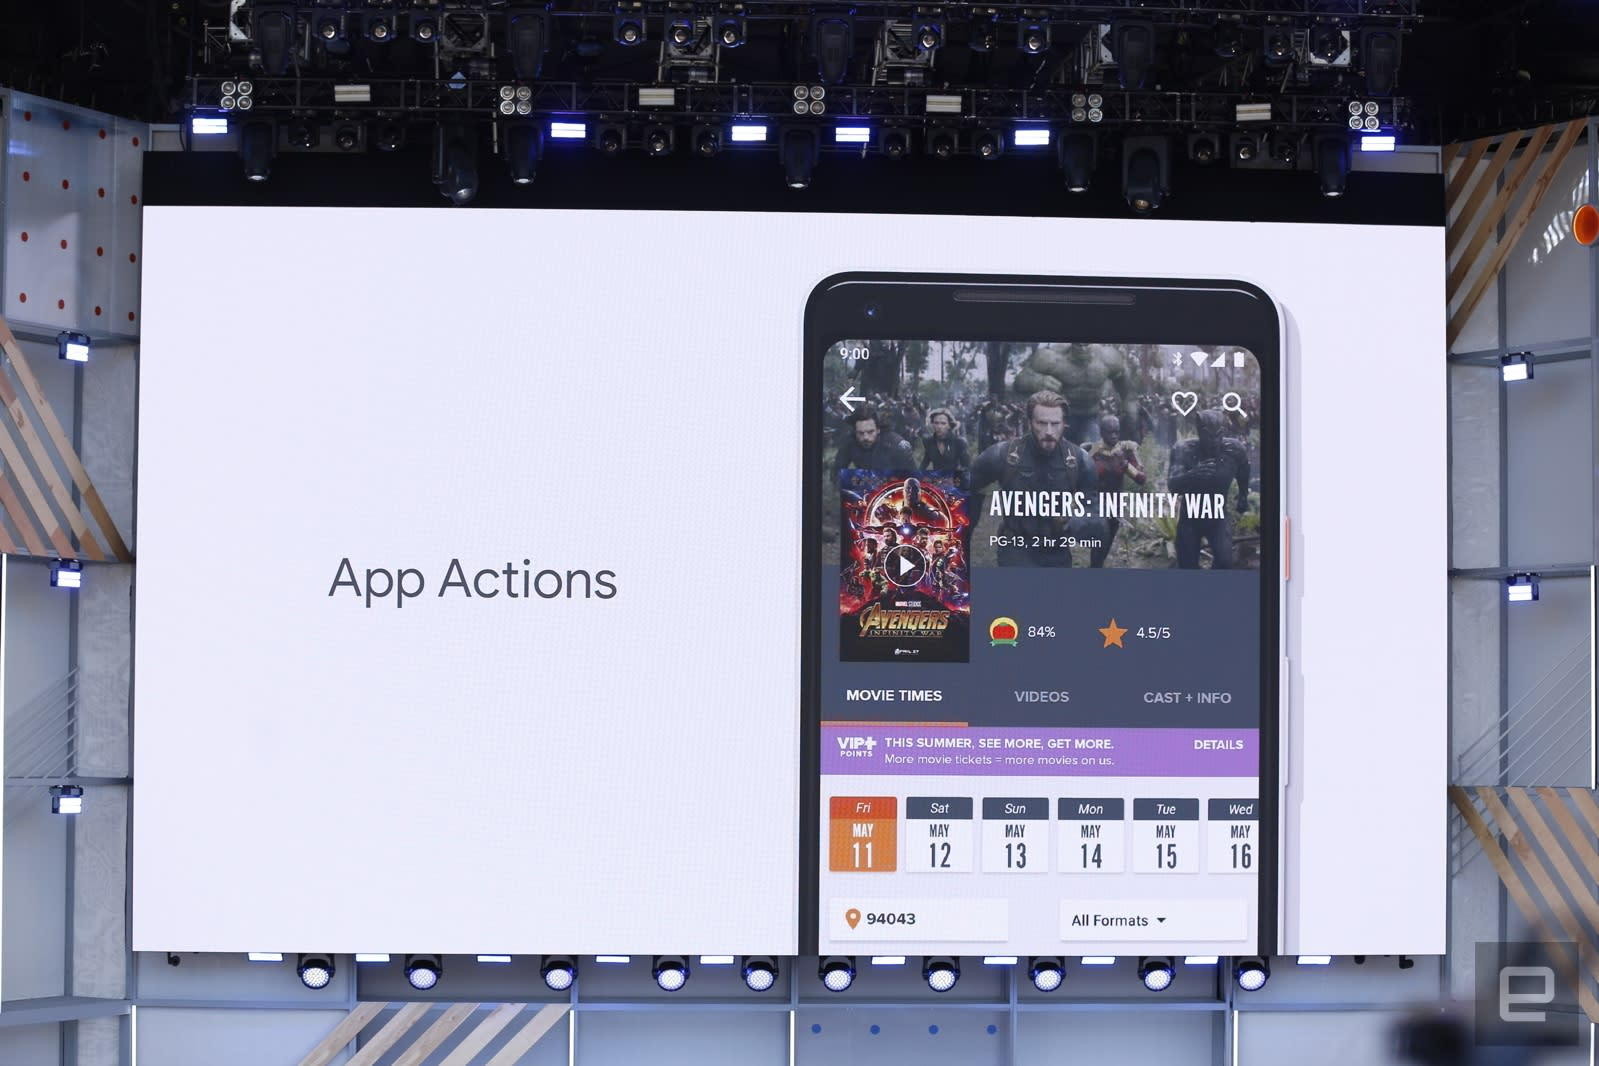 Android P Actions And Slices Predict What You Want To